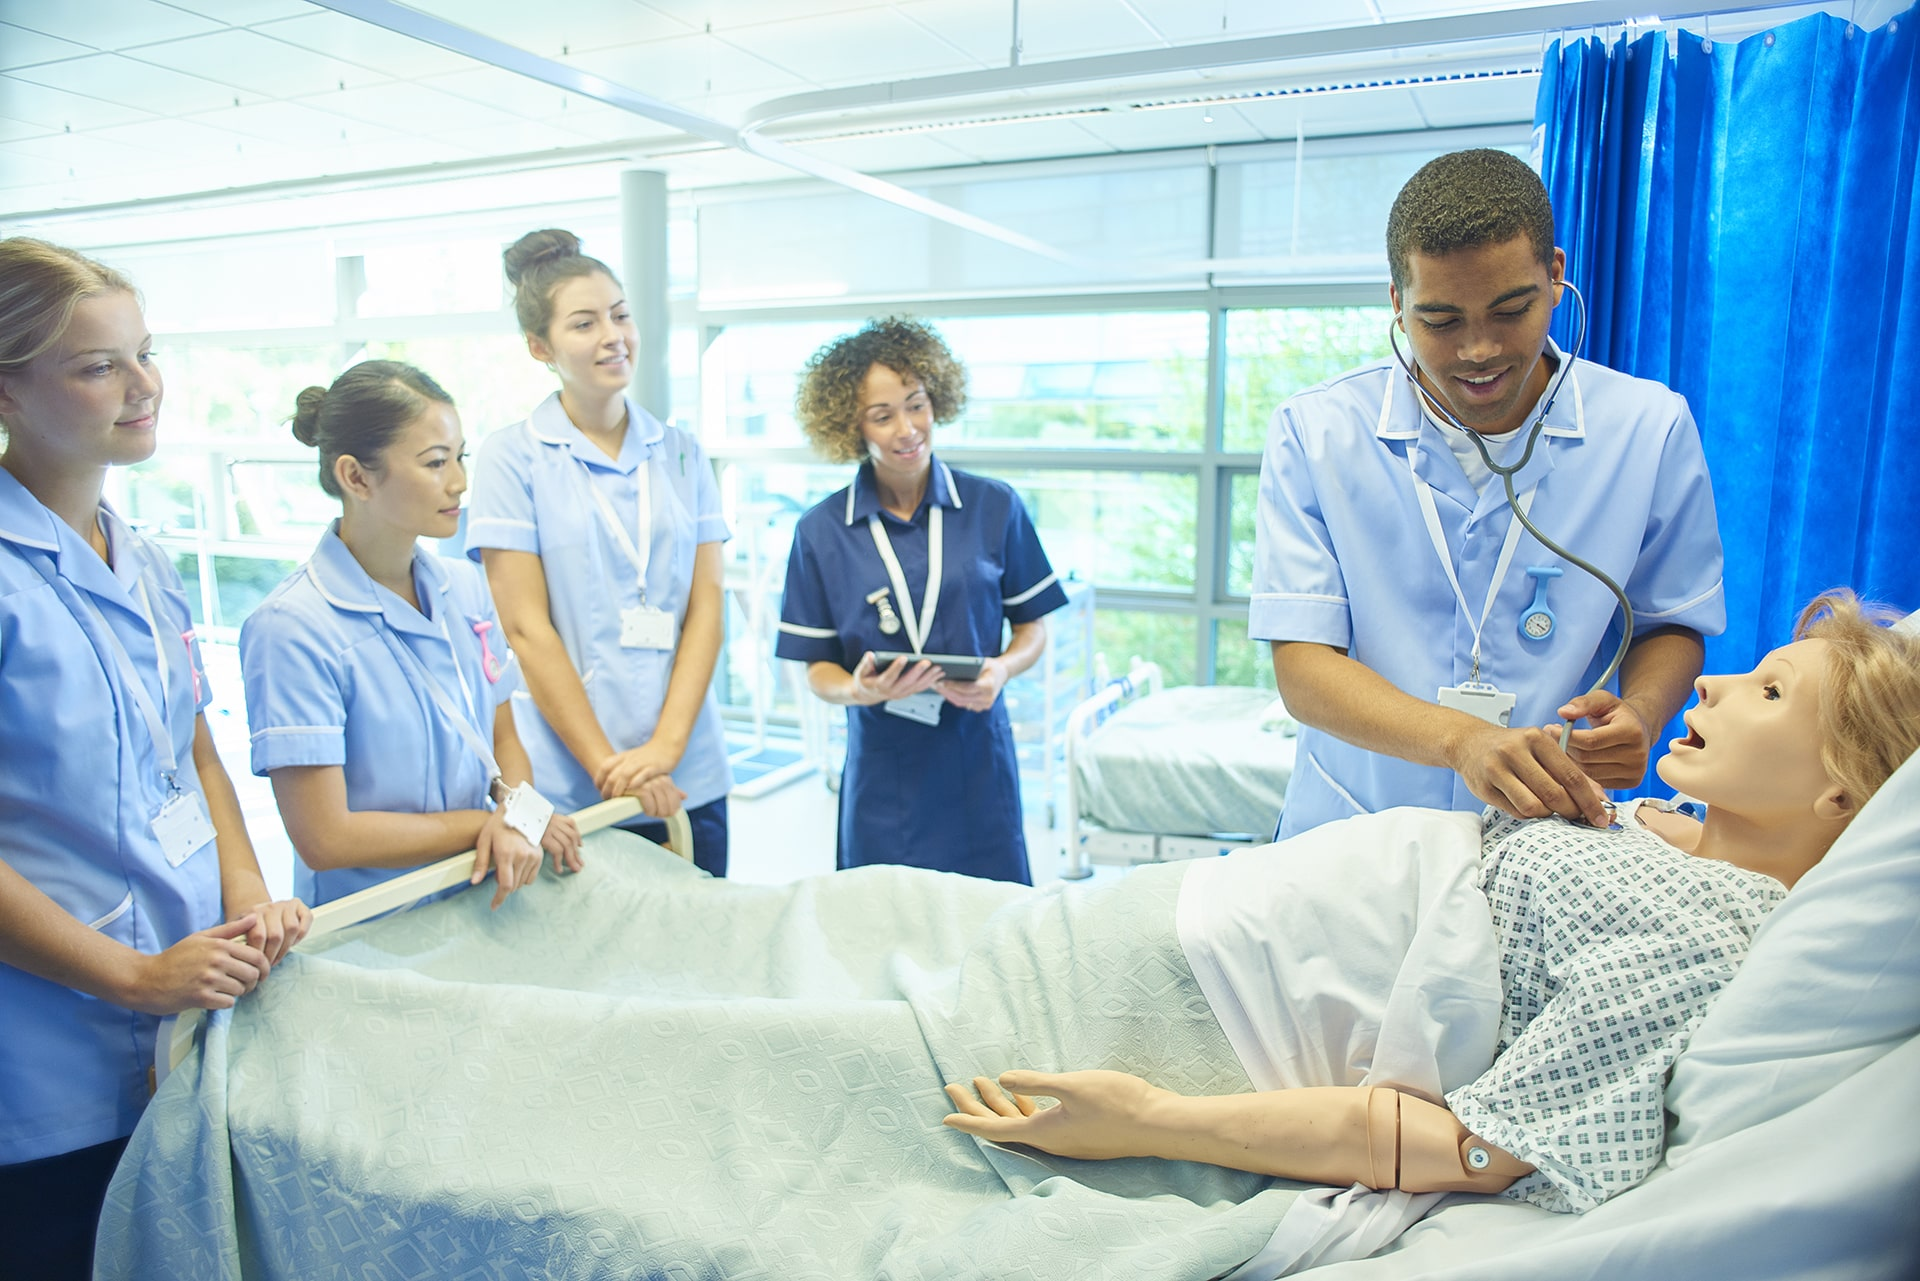 People standing around a bed looking at a medical test dummy